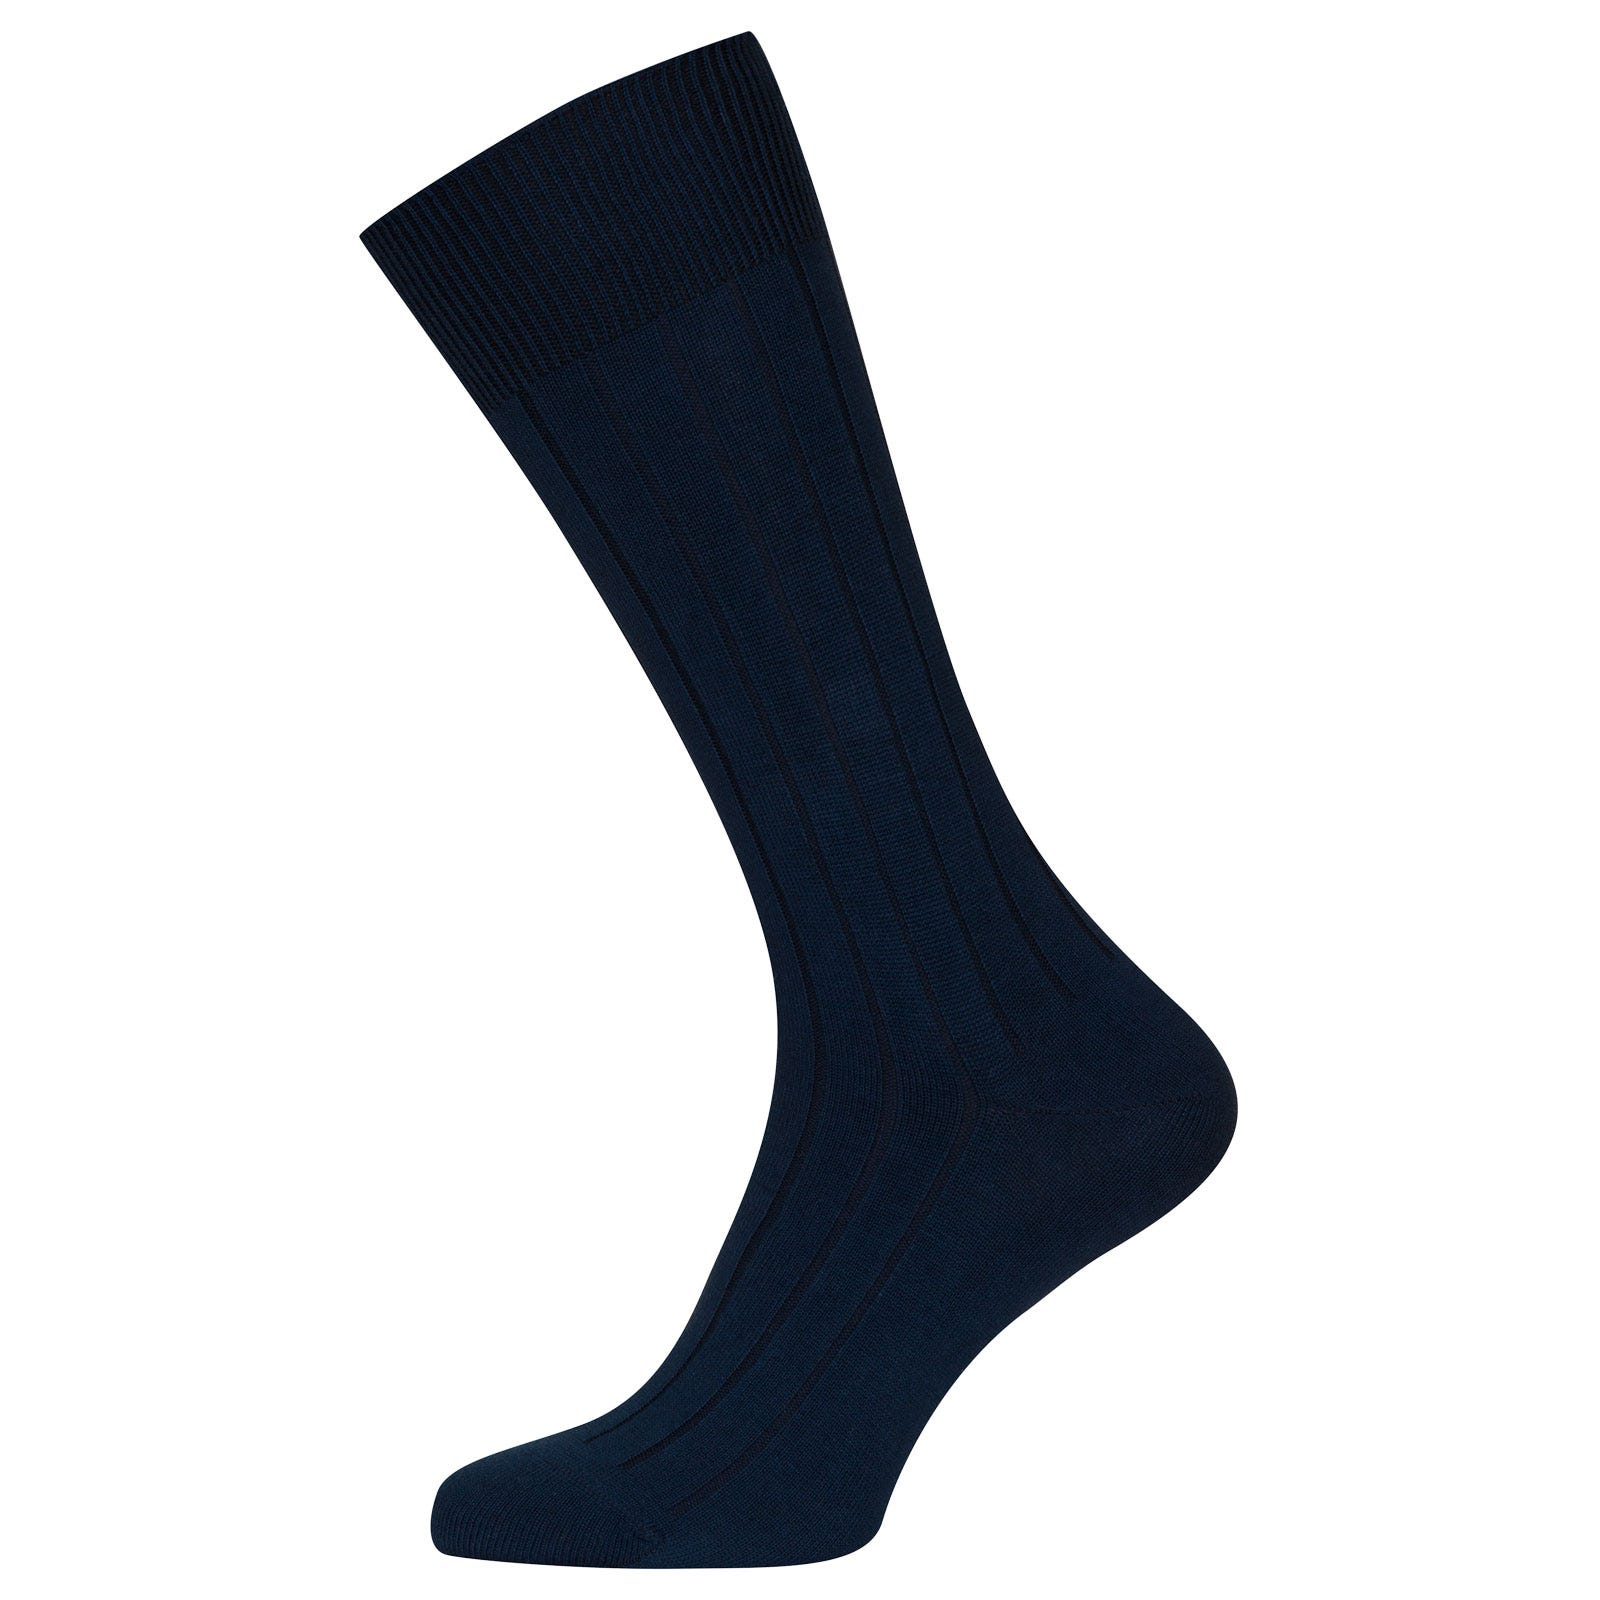 John Smedley Delta Sea Island Cotton Socks in Indigo-M/L